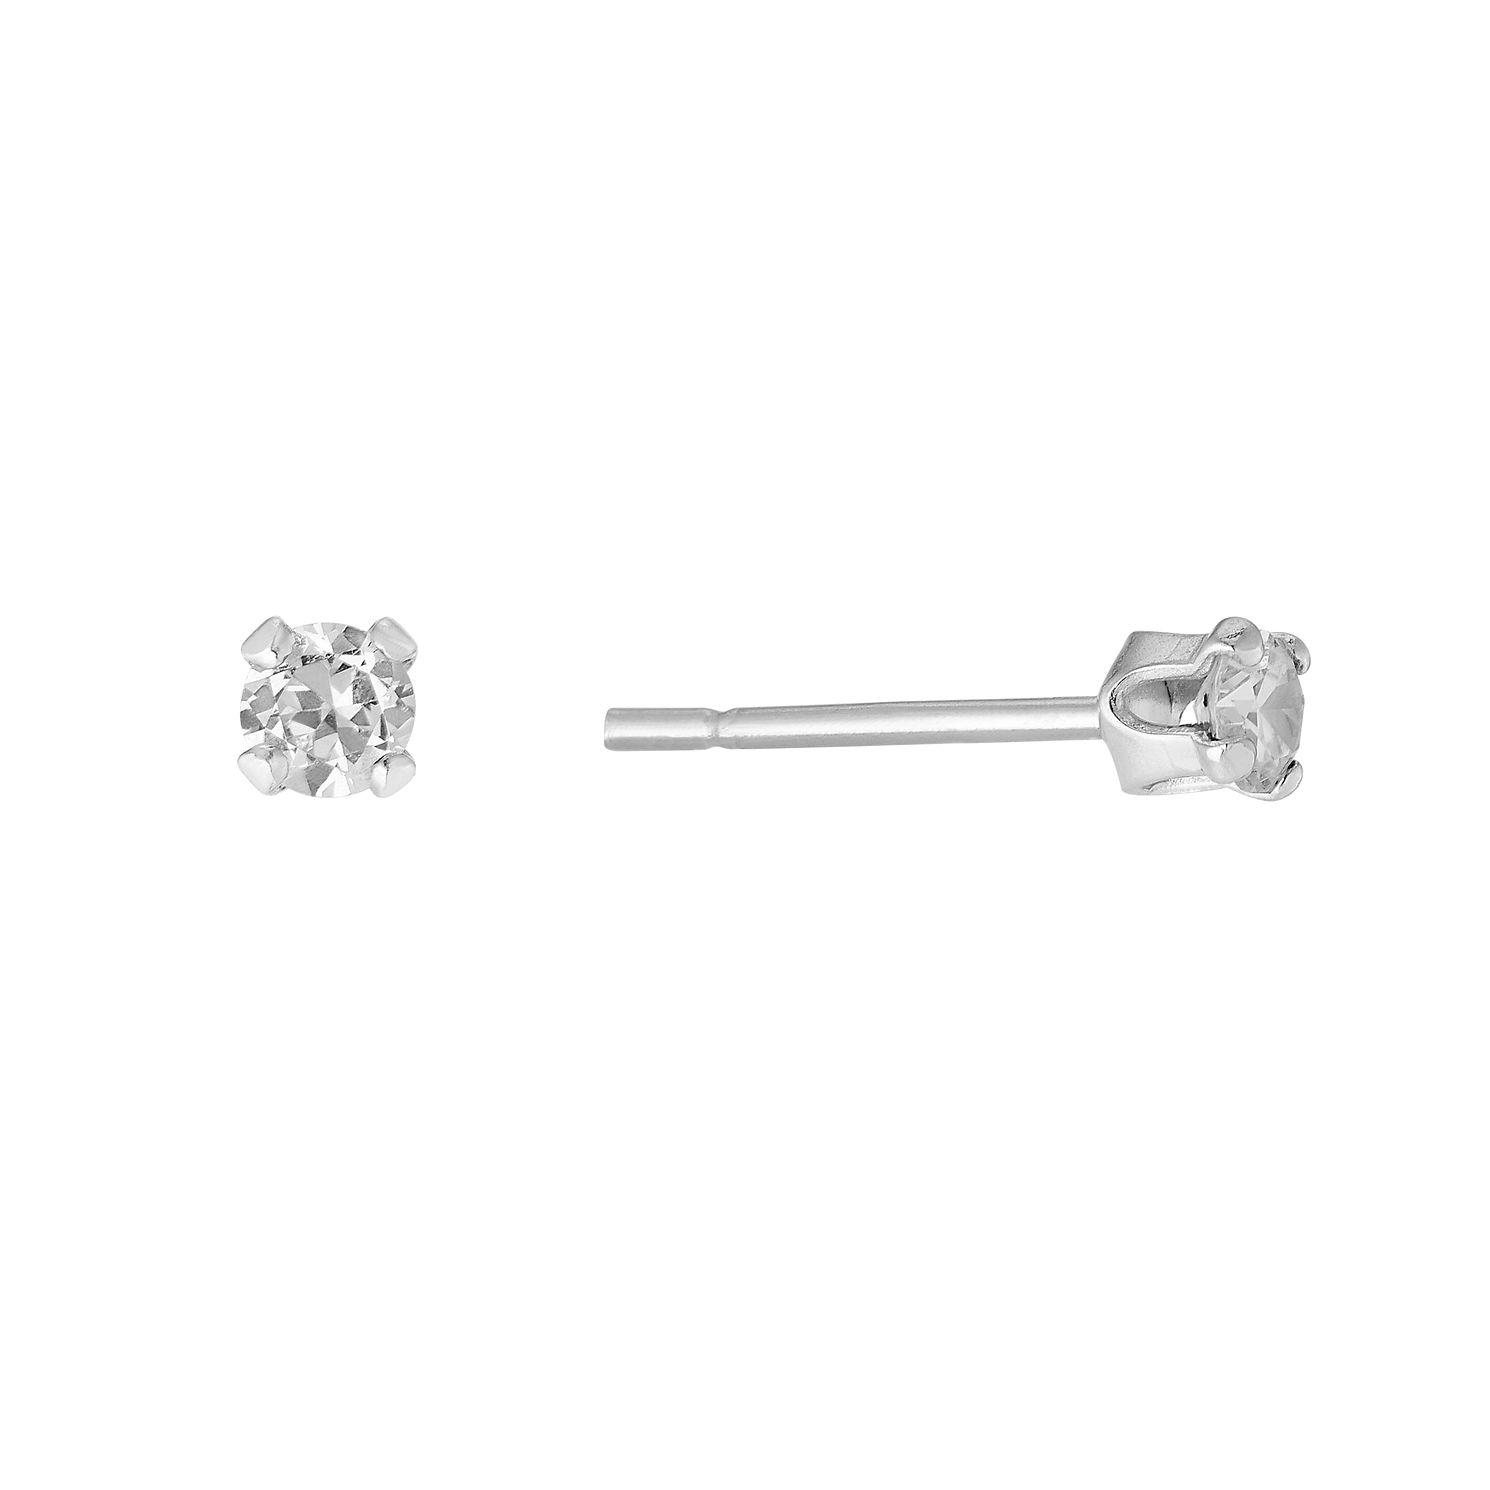 Sterling Silver Cubic Zirconia 3mm Stud Earrings - Product number 8648328